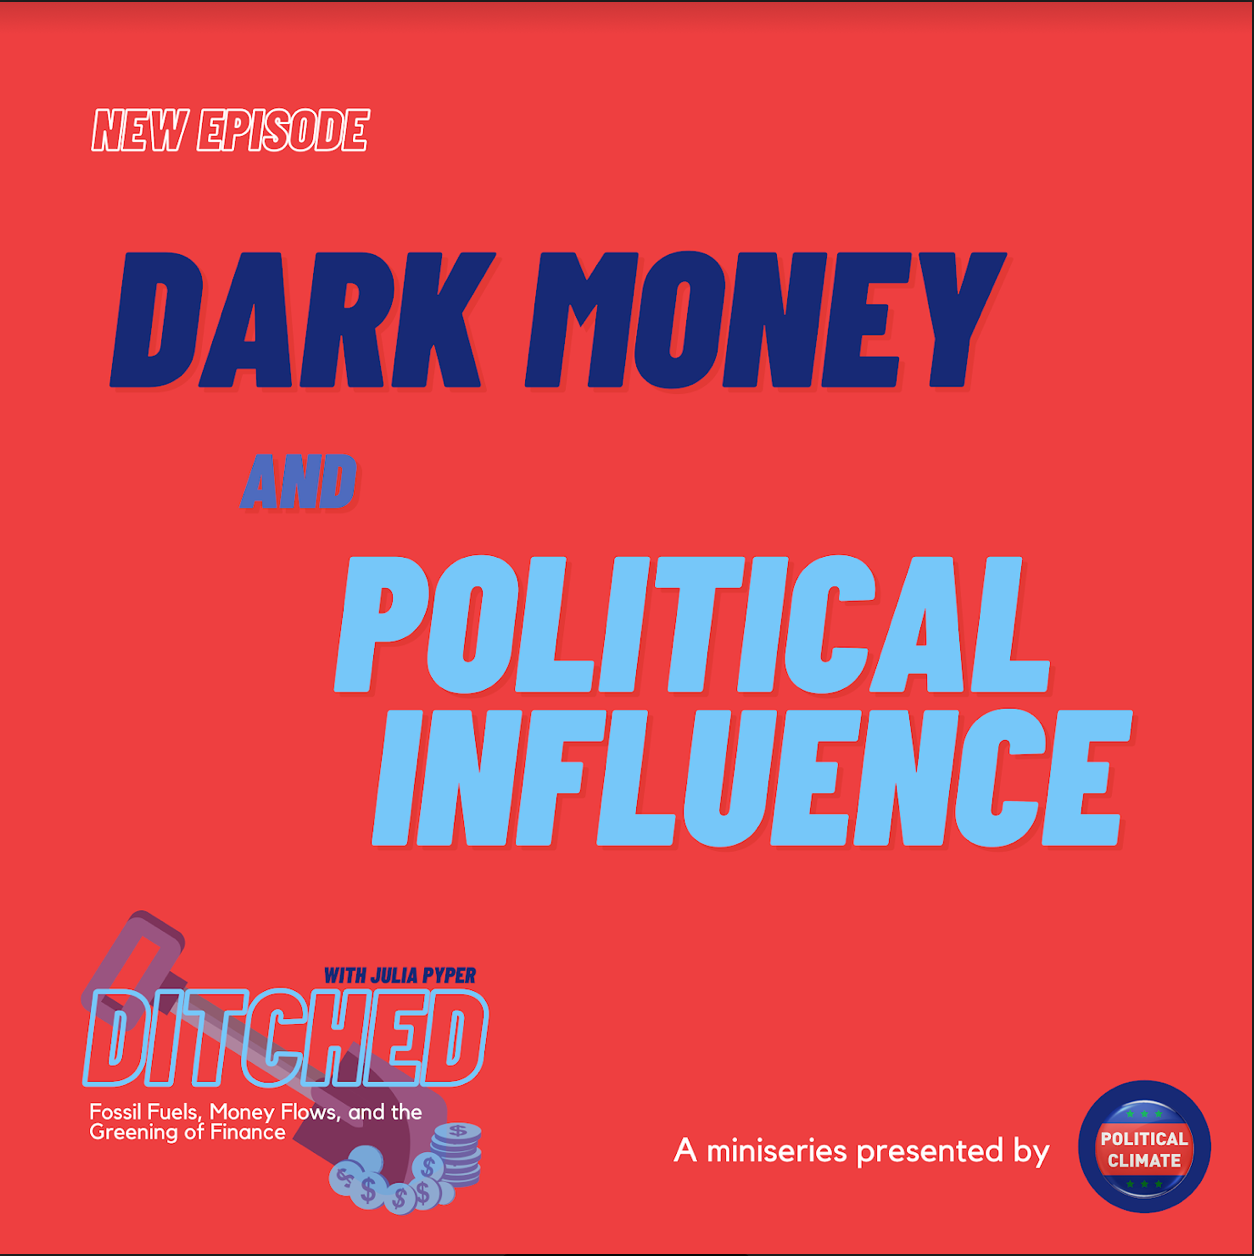 DITCHED: Dark Money and Political Influence with Dr. Leah Stokes